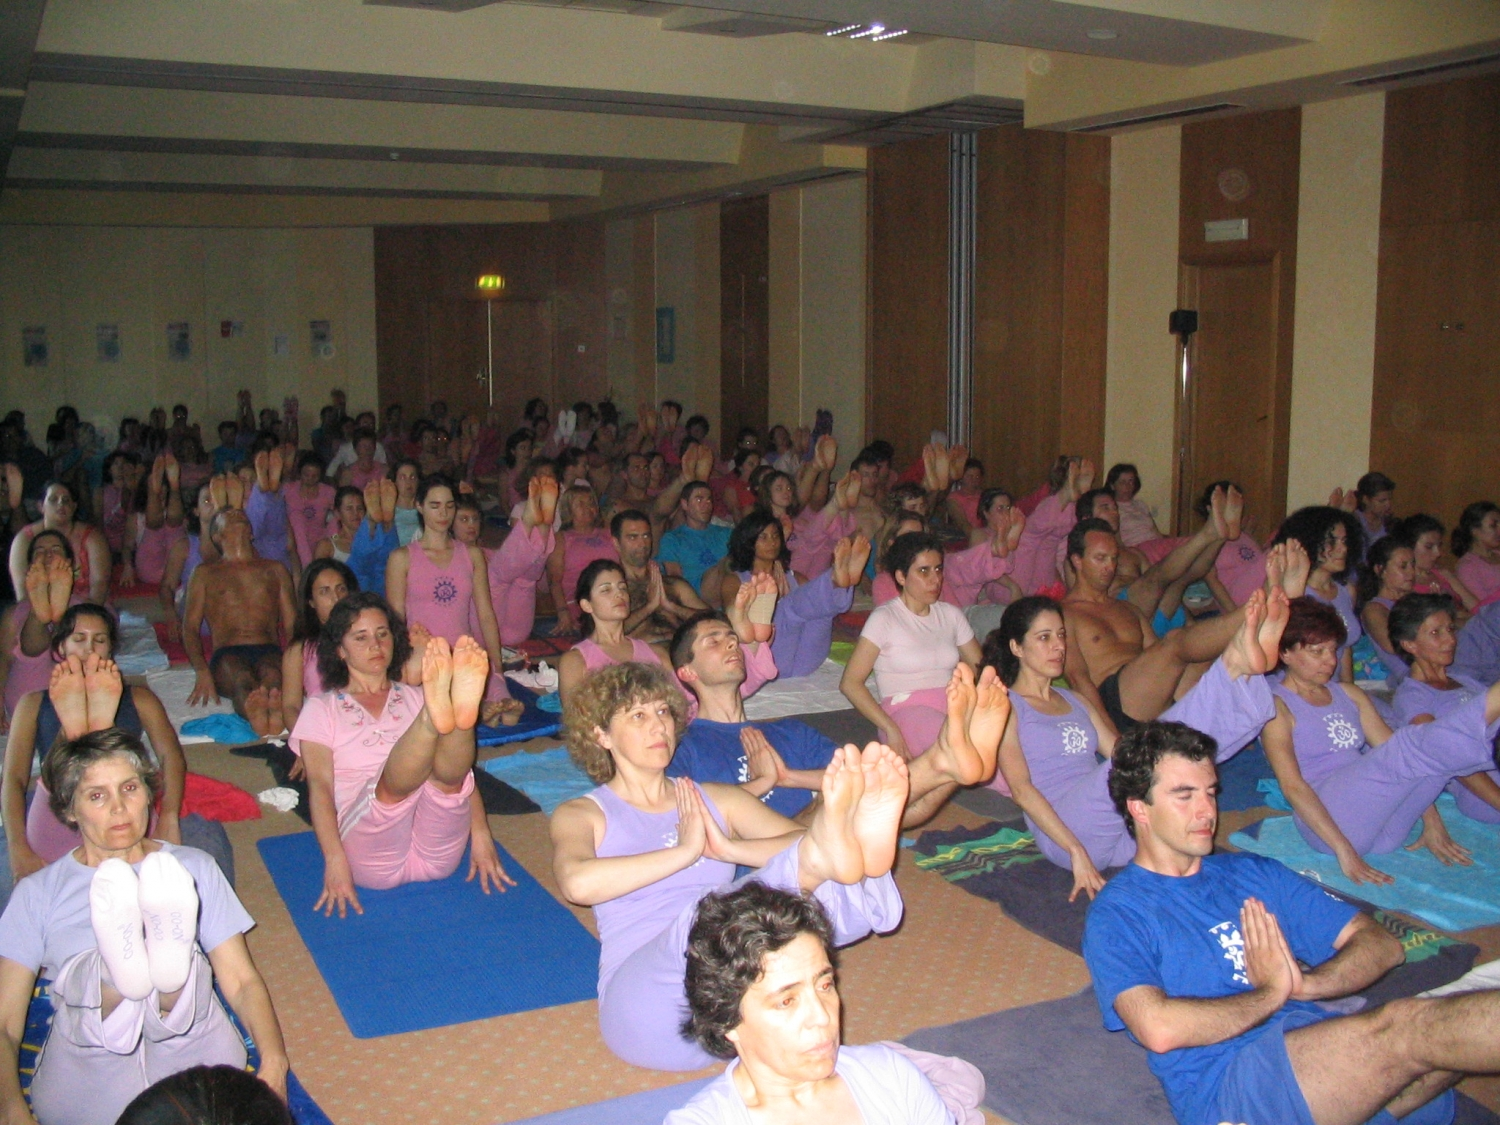 Encontro Nacional do Yoga - Faro - 2006, Abril, 7 a 9